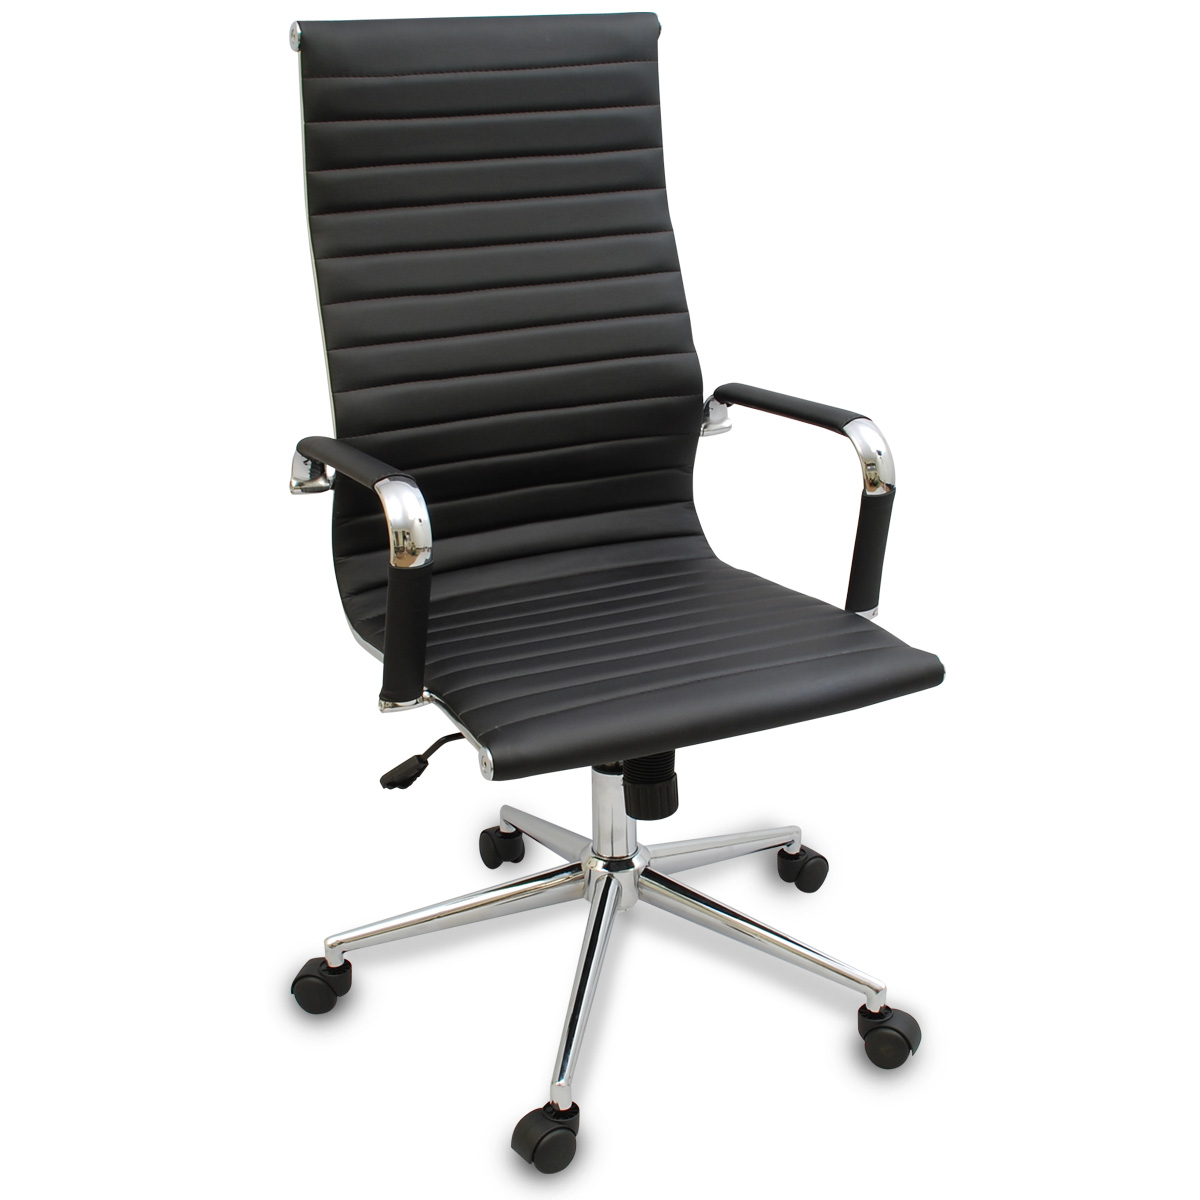 Modern ergonomic office chairs - New Black Modern Ergonomic Ribbed High Back Executive Computer Responsive Image White Desk Chair